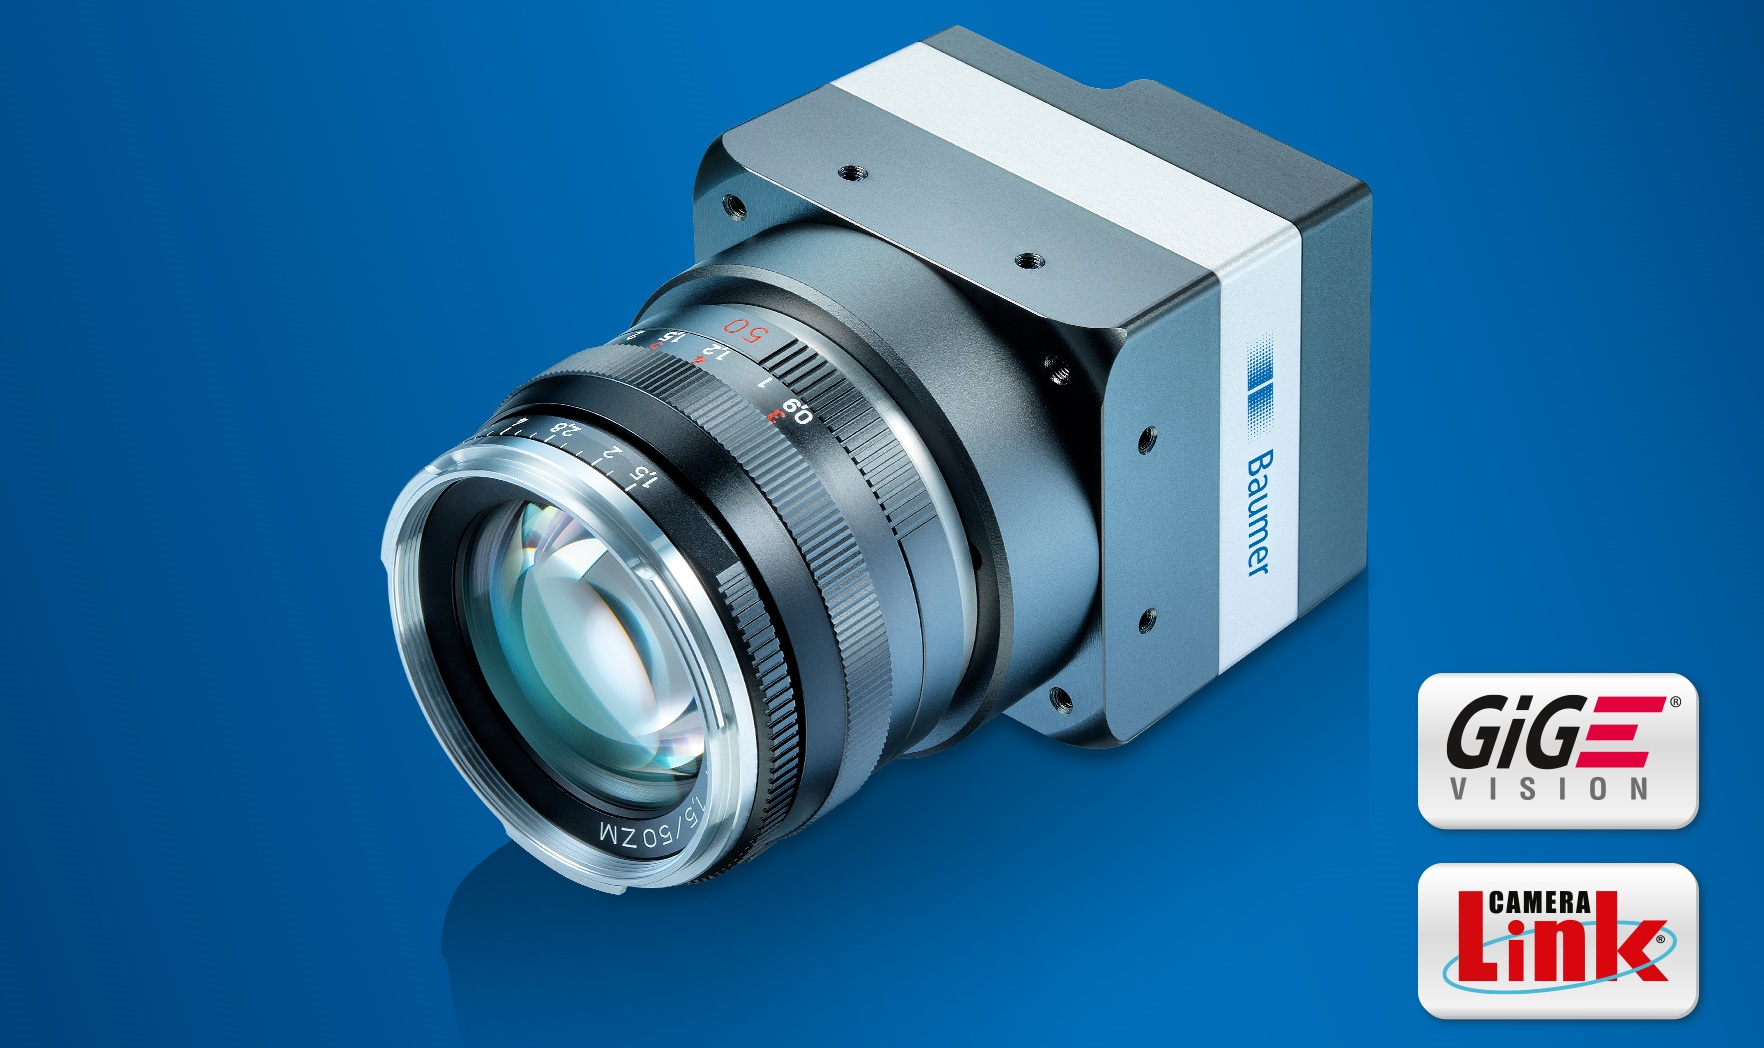 The new high-resolution LX cameras with 48 megapixels and up to 15 fps provide high resolution and excellent image quality to set new standards in highly-dynamic applications.